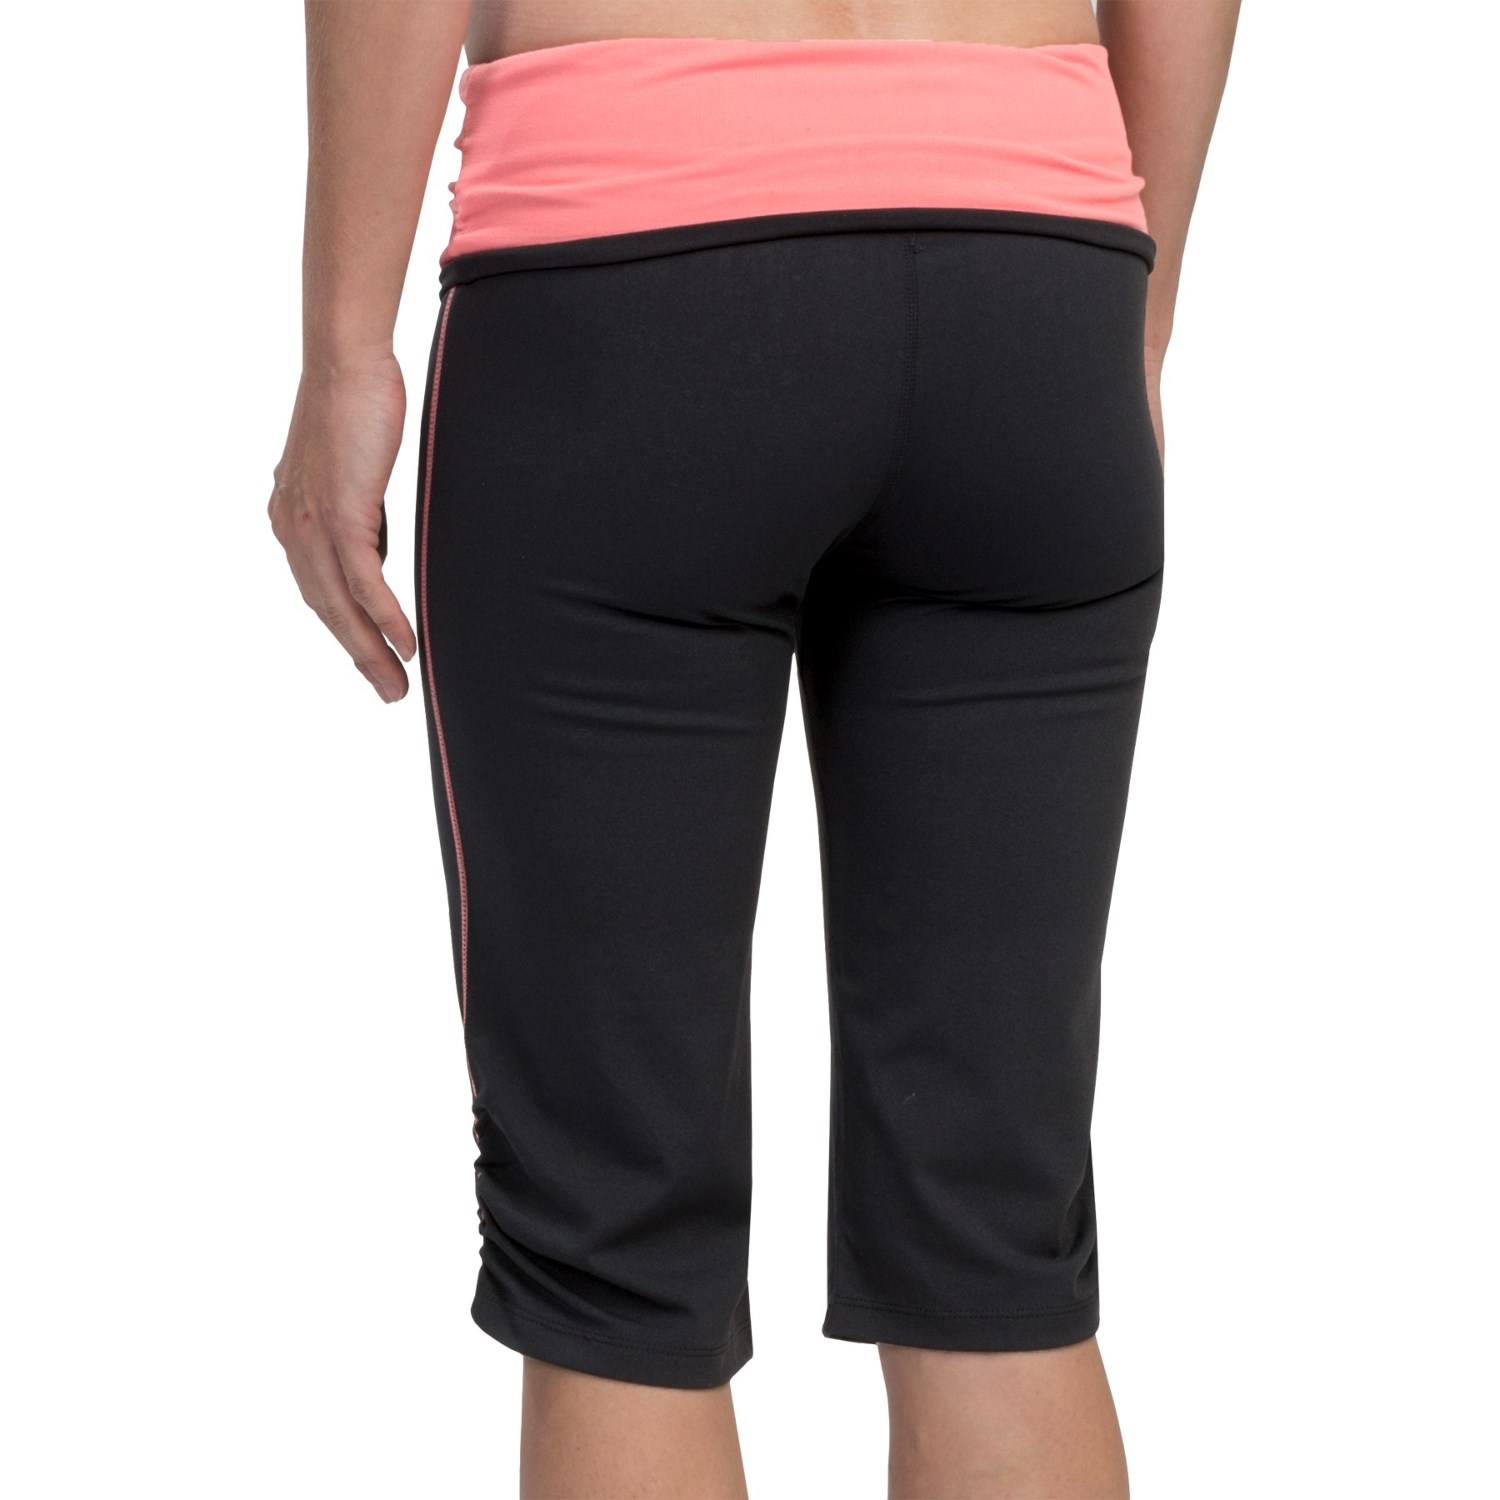 Ht yoga pants